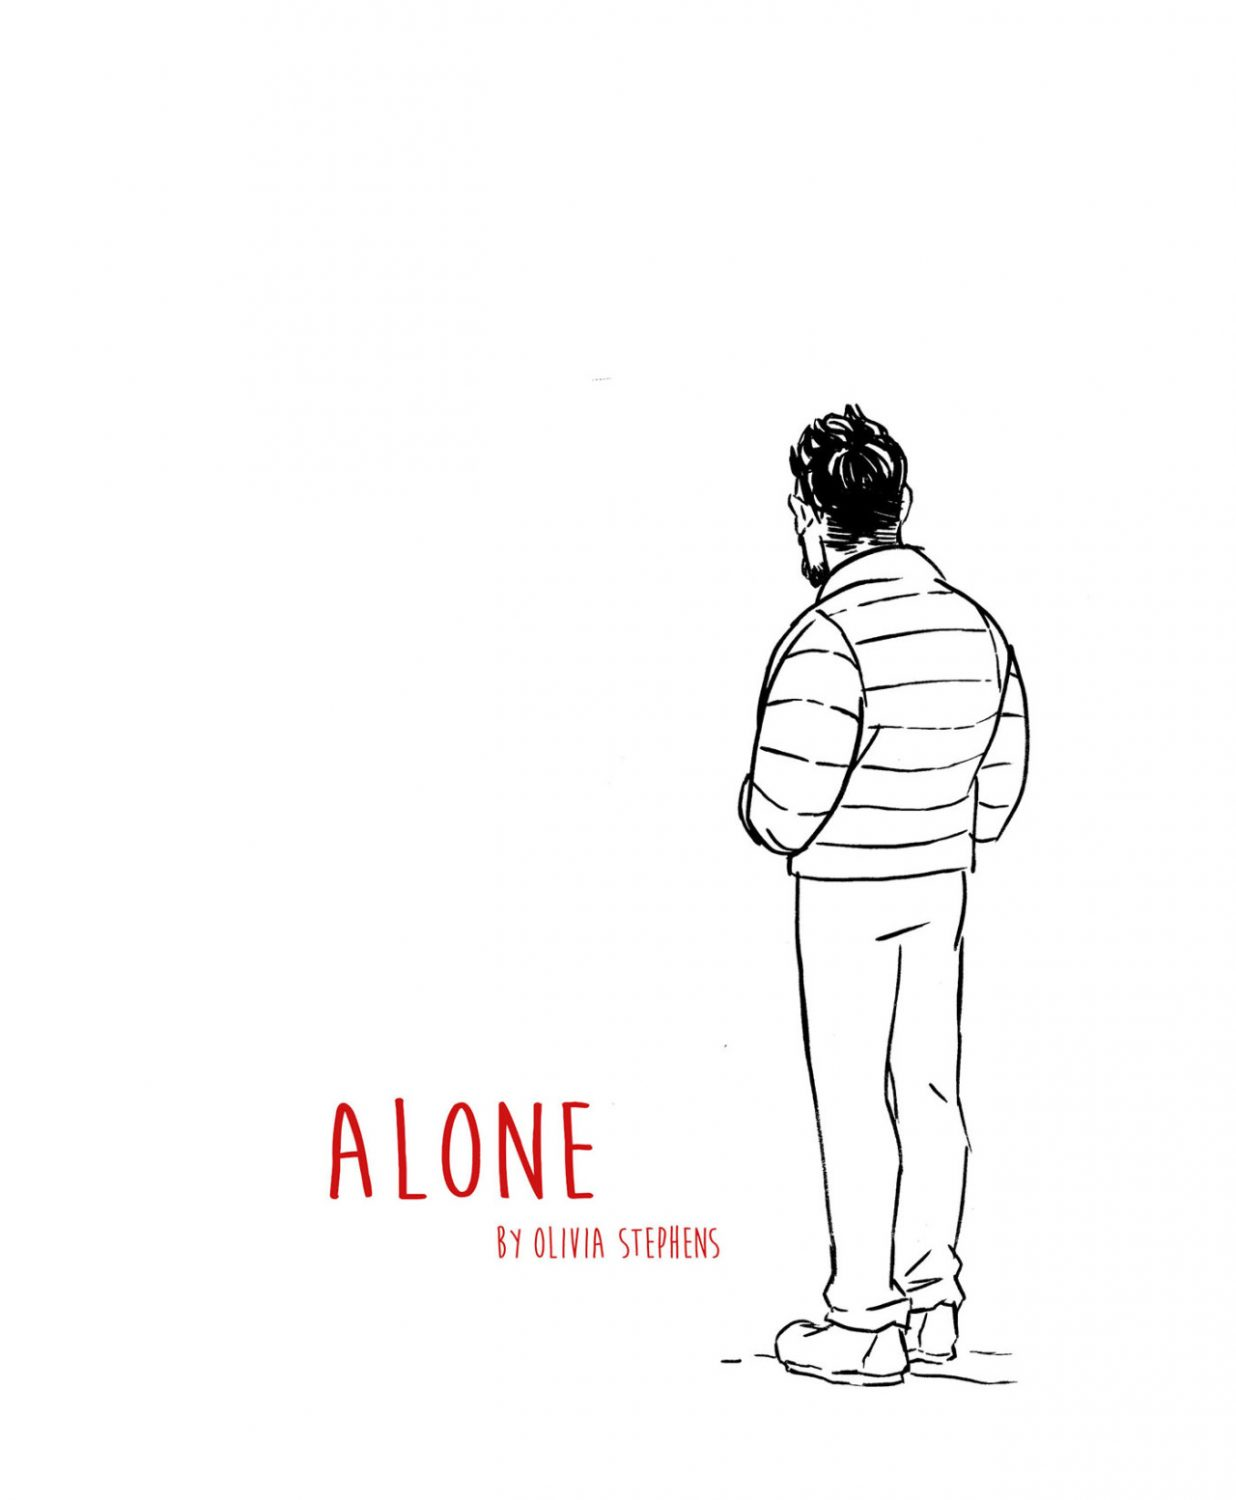 Chapter 1: Alone